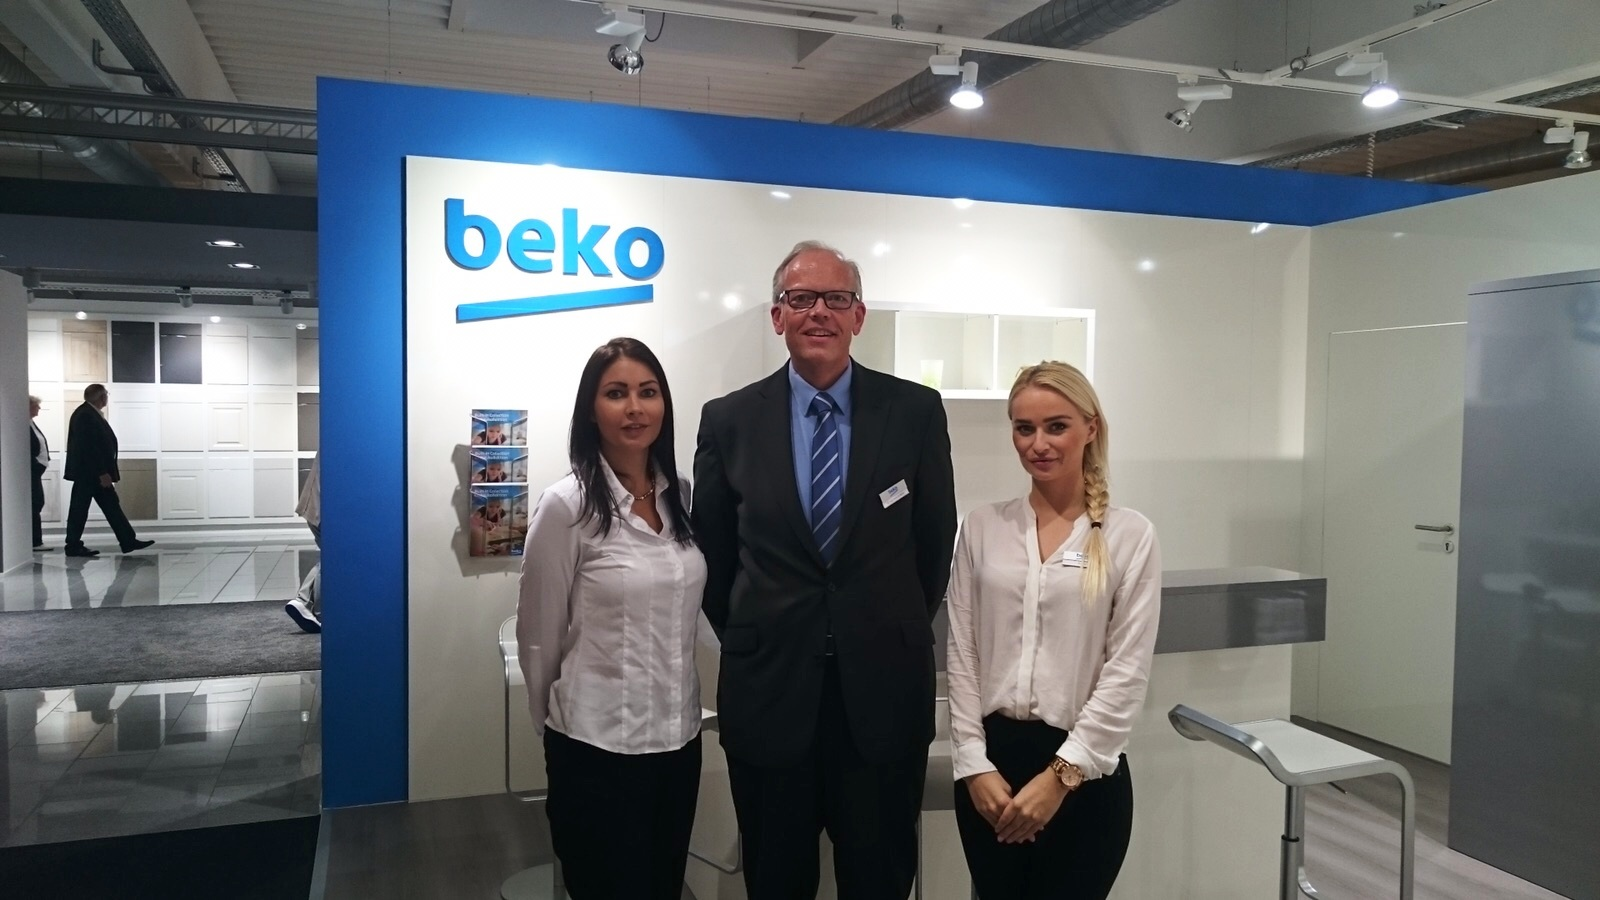 Fair hostesses for beko